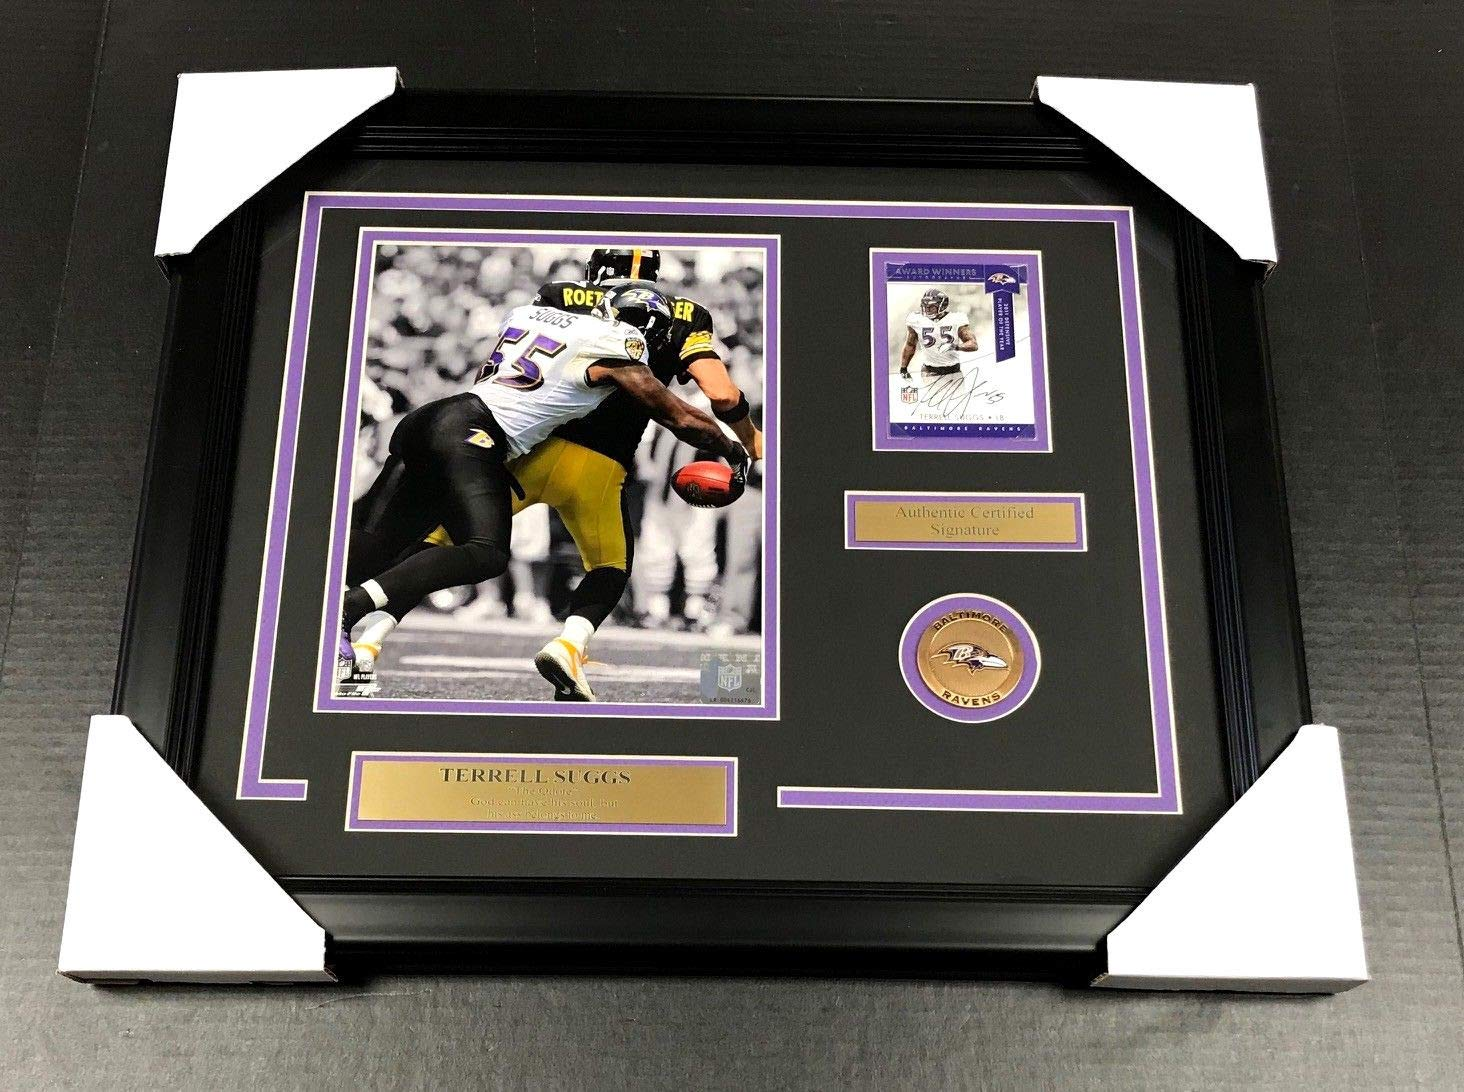 TERRELL SUGGS SIGNED AUTOGRAPHED CARD FRAMED BALTIMORE RAVENS 8X10 PHOTO